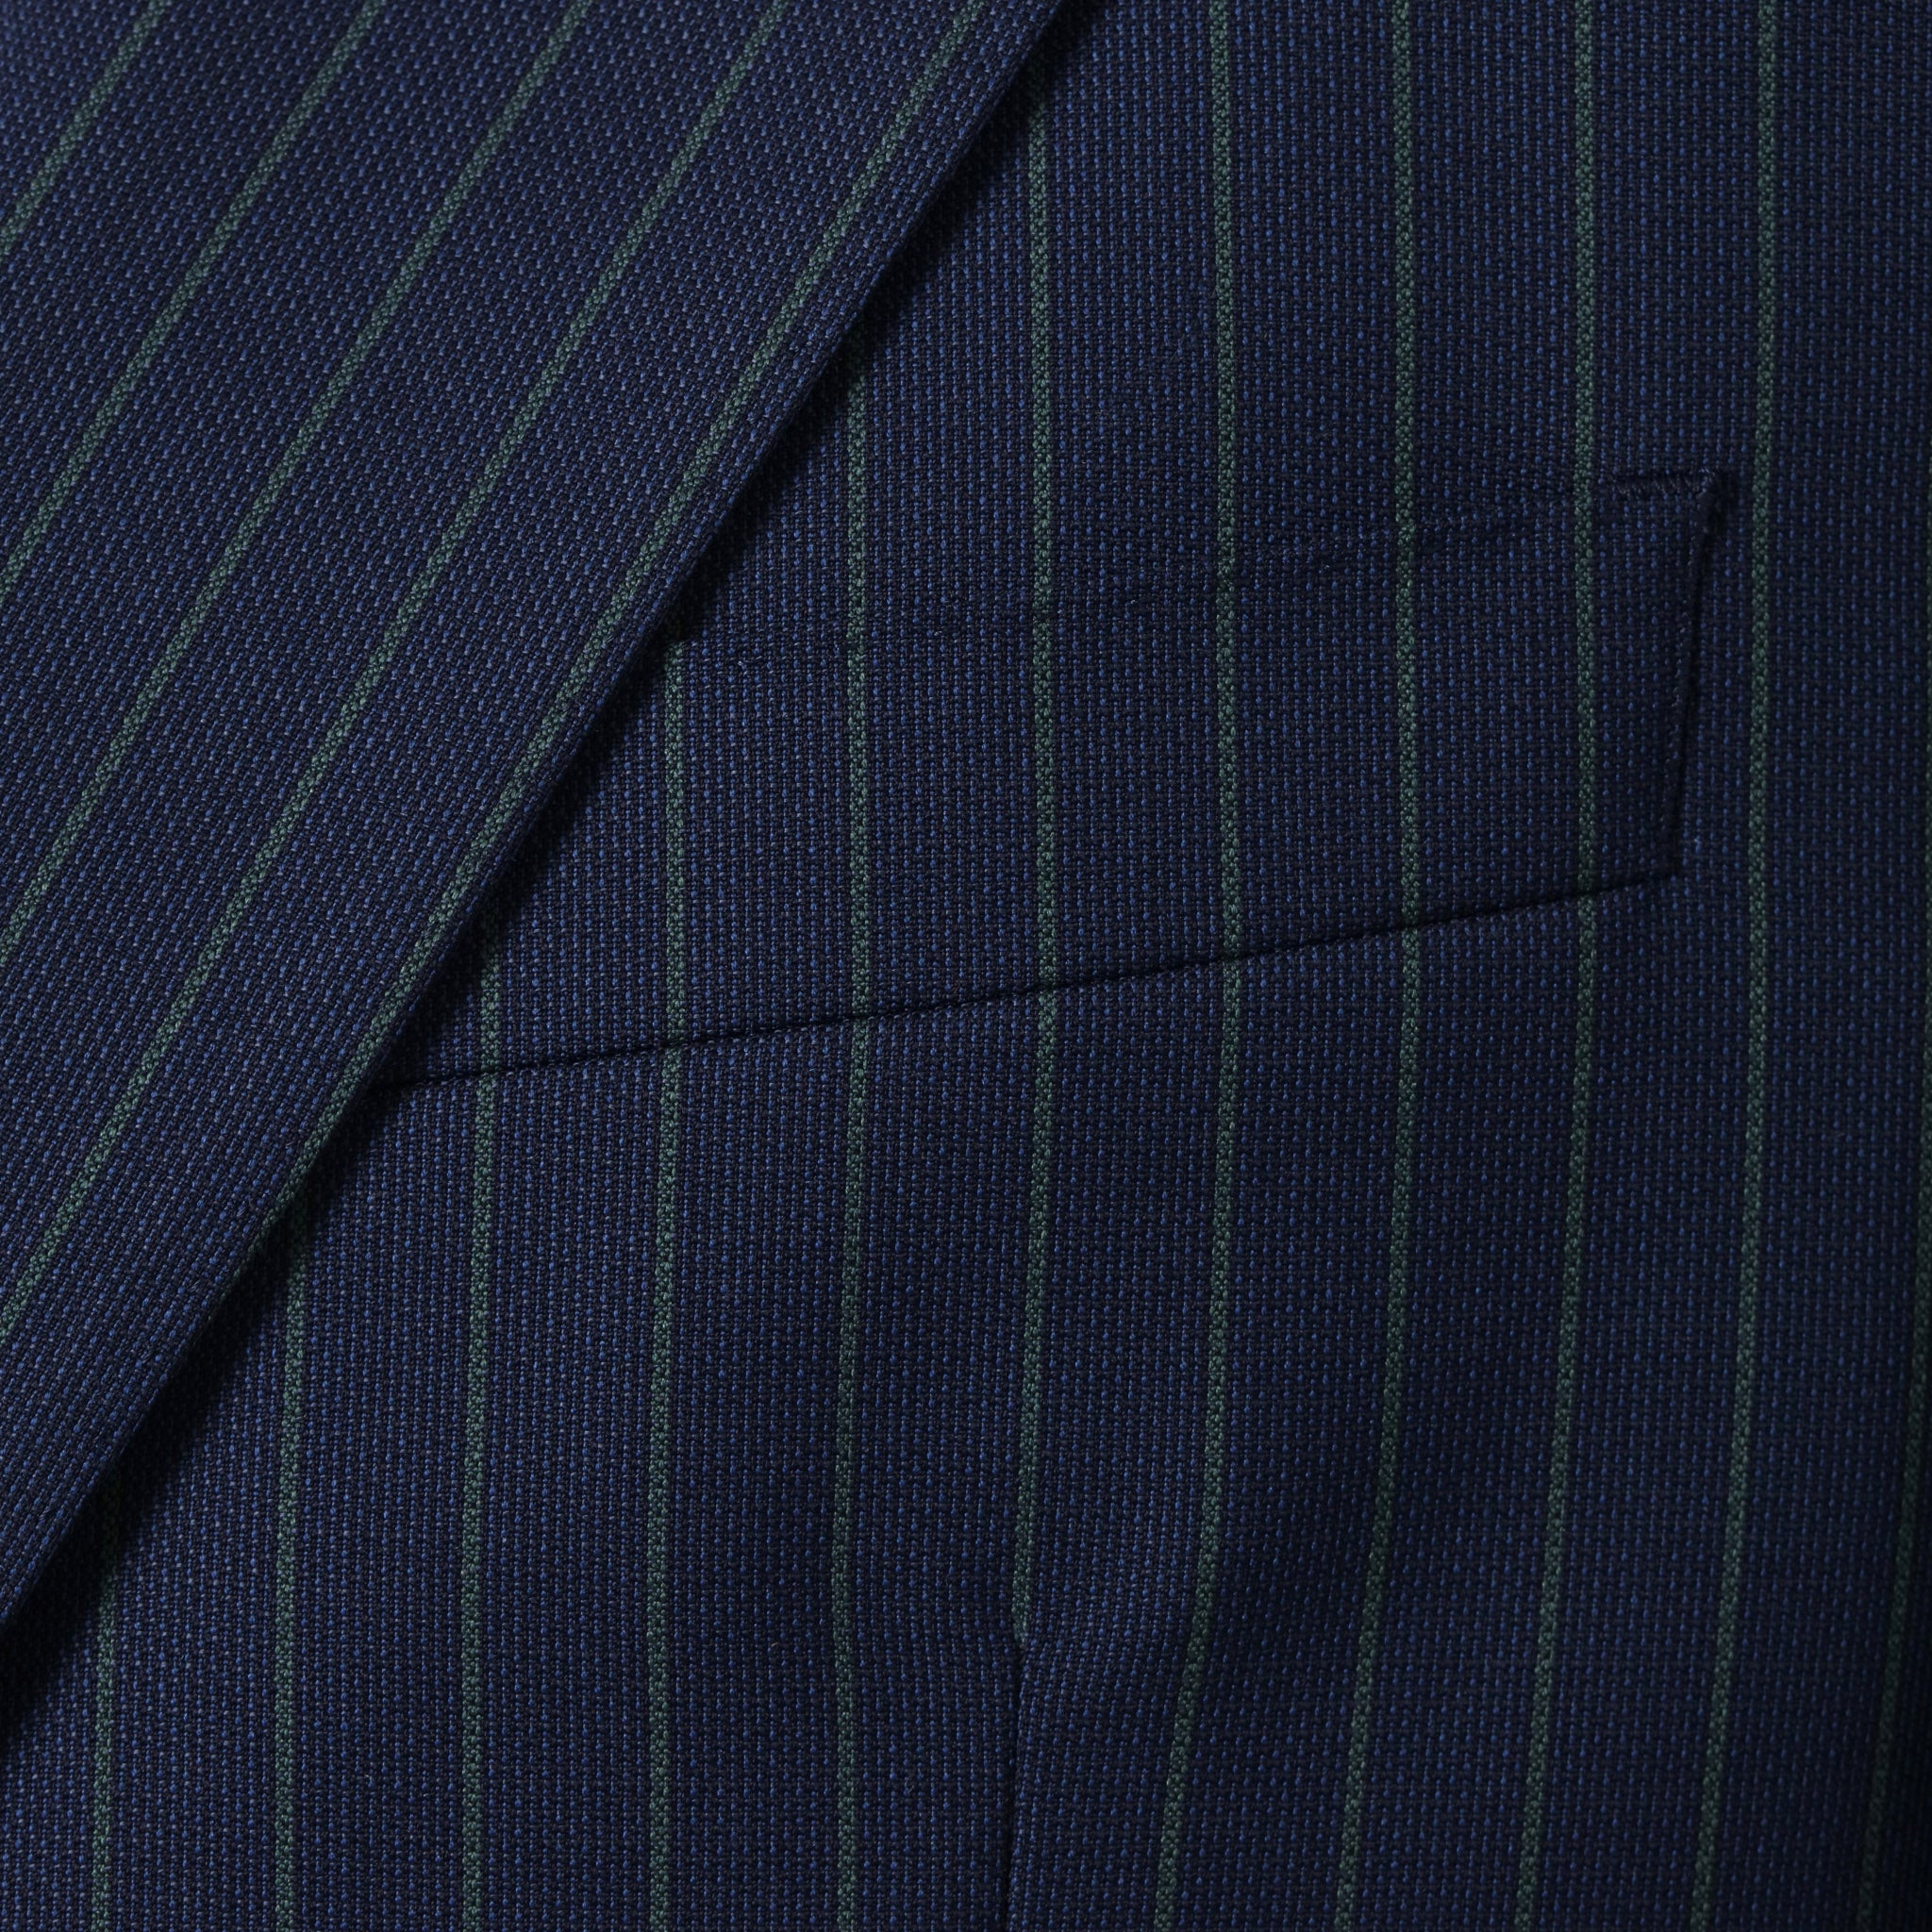 Scabal Image in Medium Blue w. Green Pin Stripe